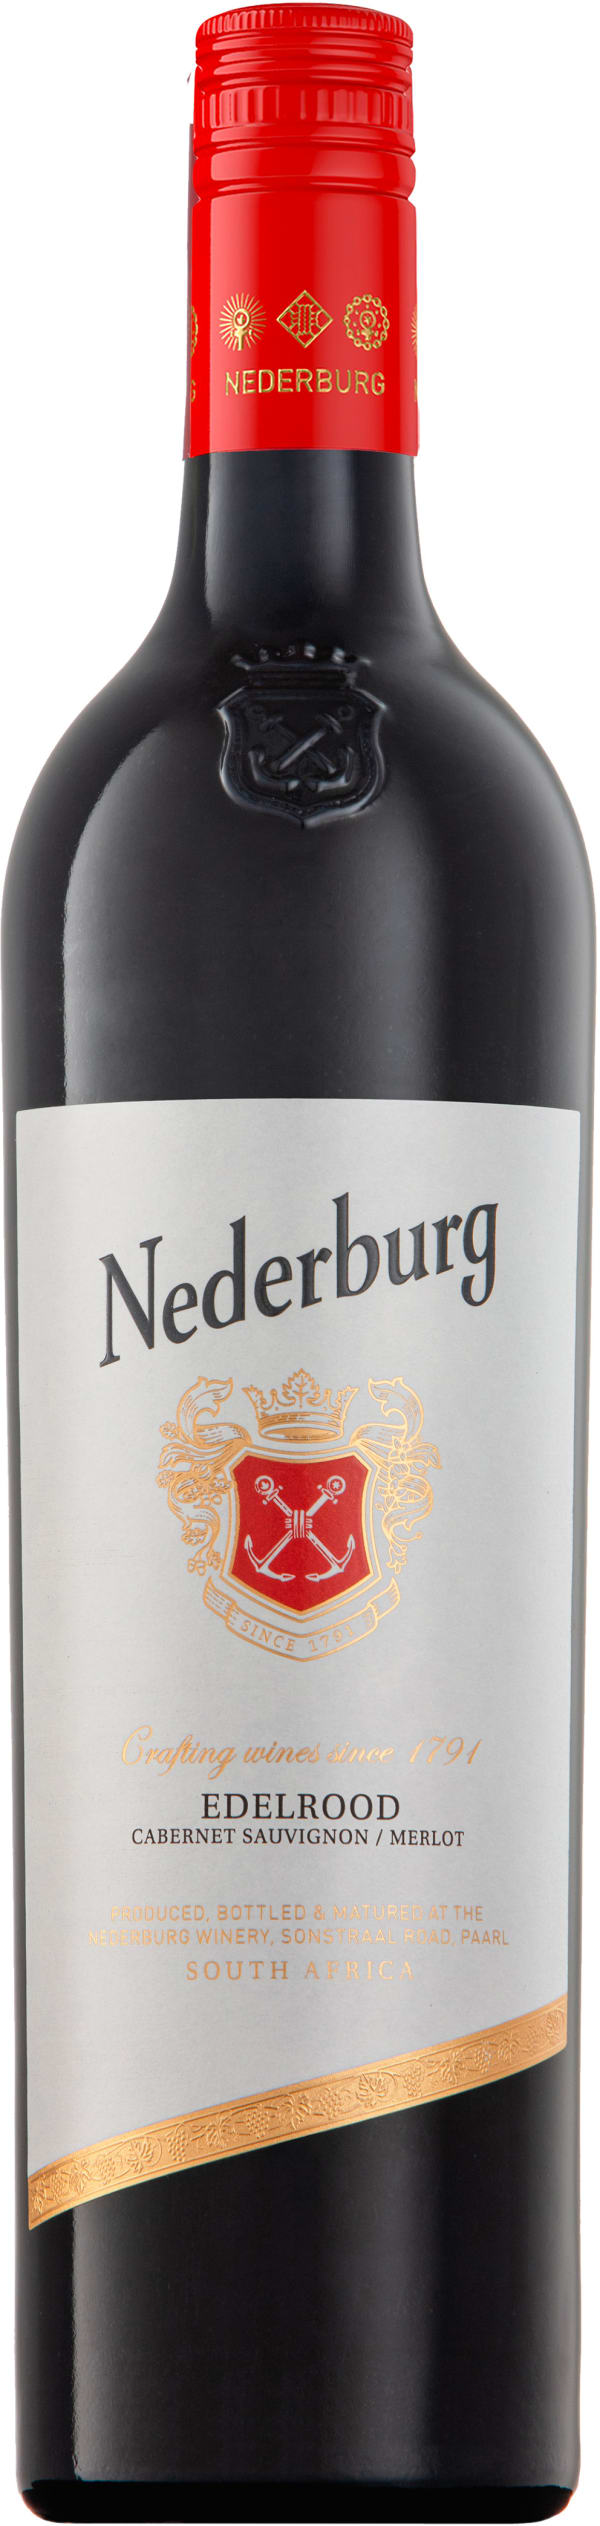 Nederburg Winemaster's Edelrood 2015